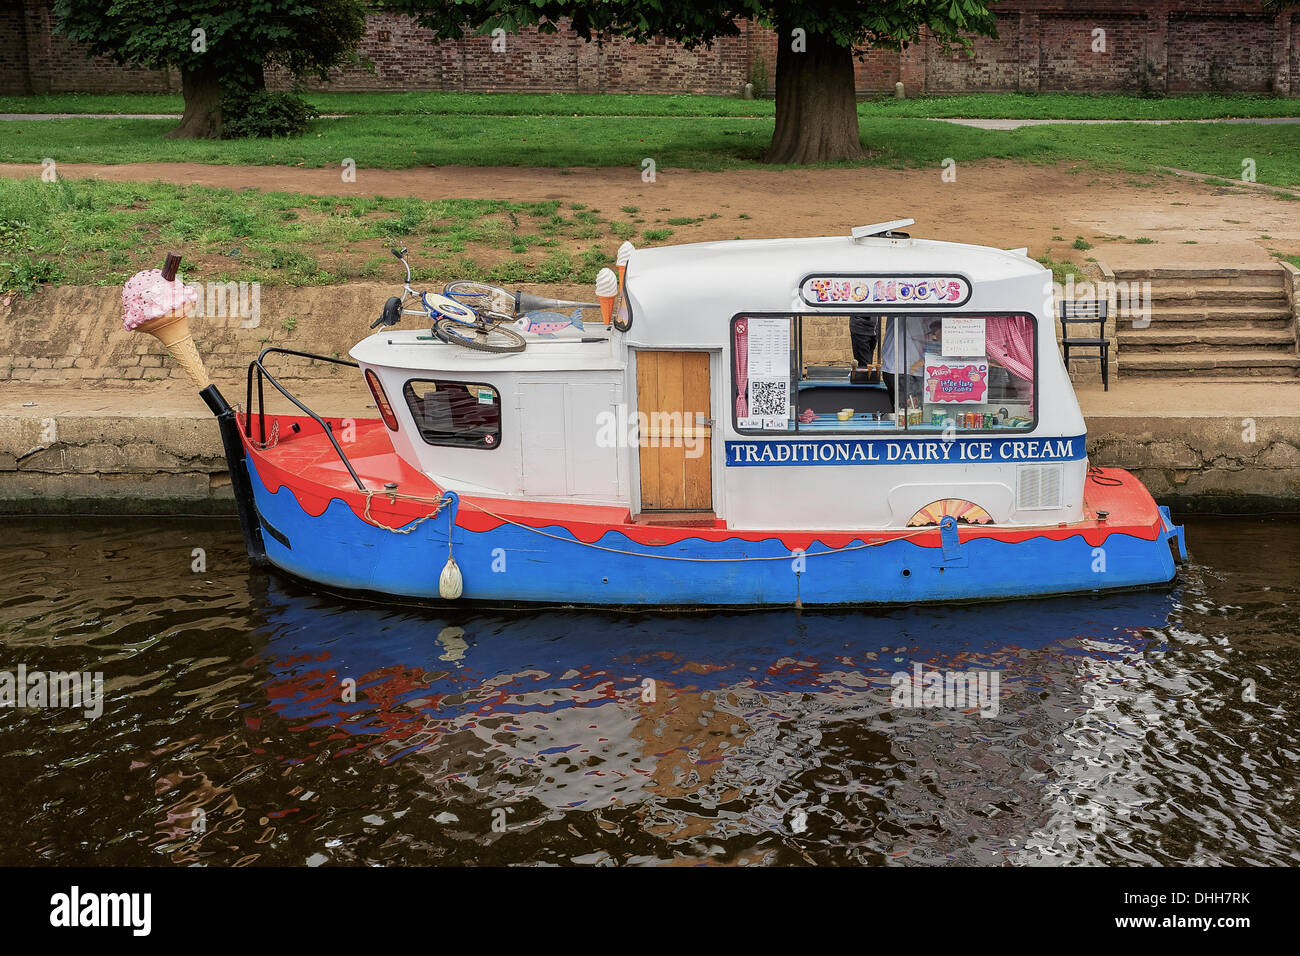 A boat converted into a floating ice cream 'van' on the River Ouse in York, UK. Entrepreneurial new business concept - Stock Image